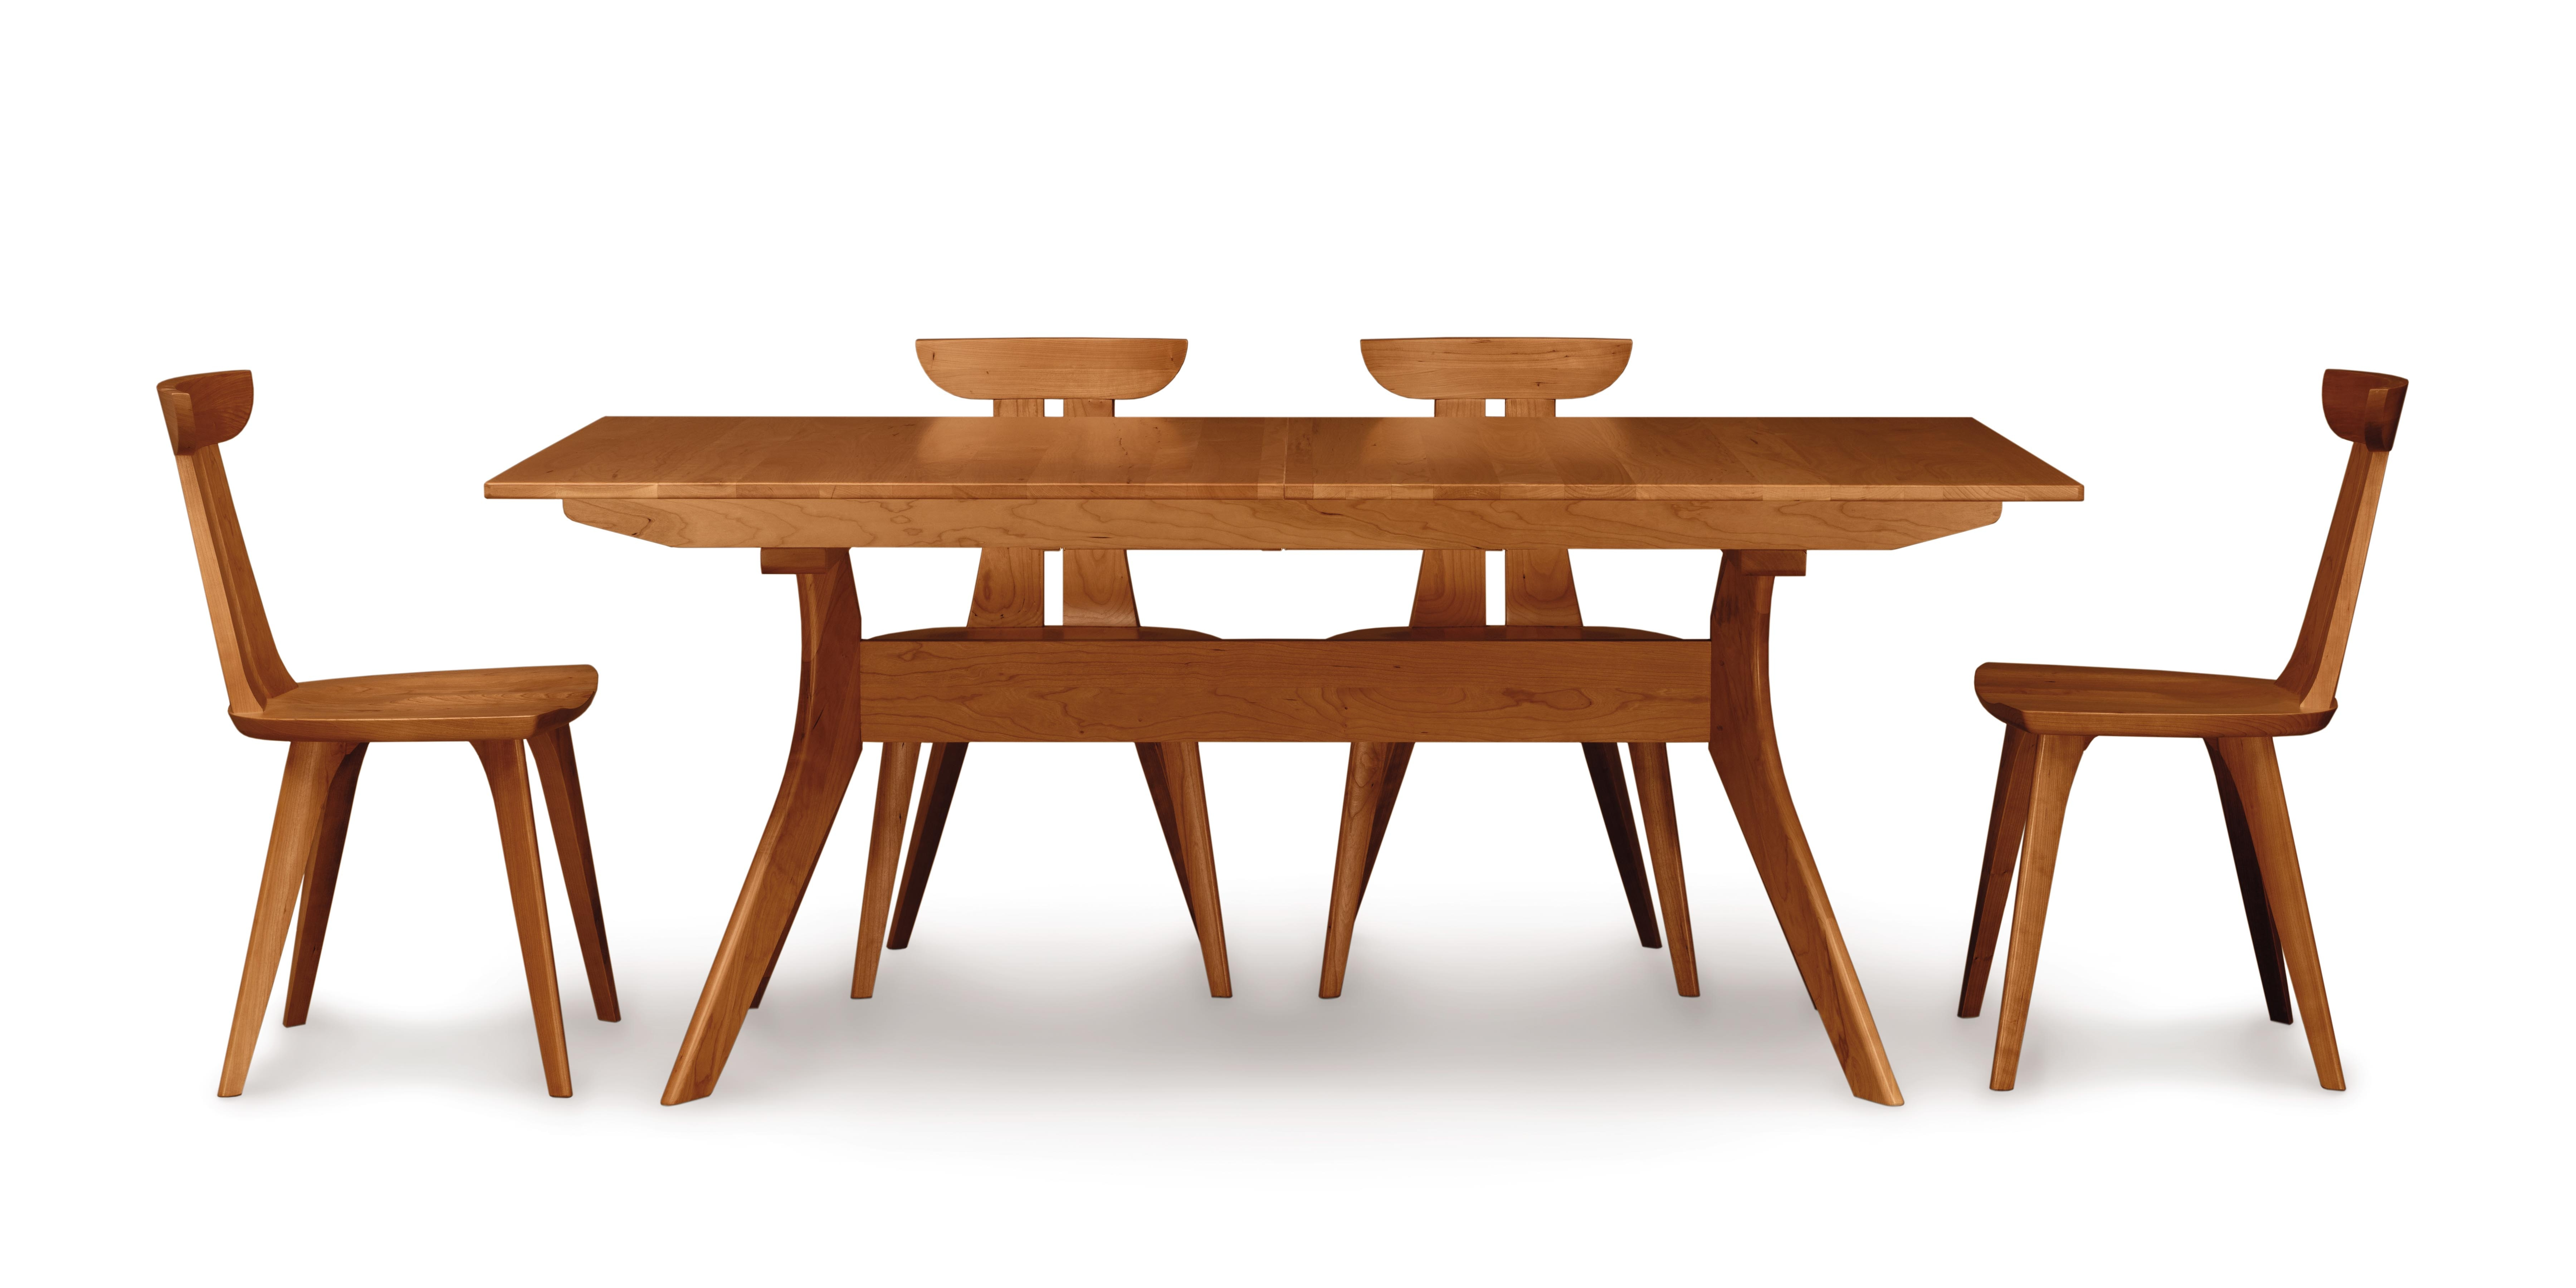 Copeland Audrey Extension Table With EasyStow Extension And Leaf Storage In  Cherry 6 AUD